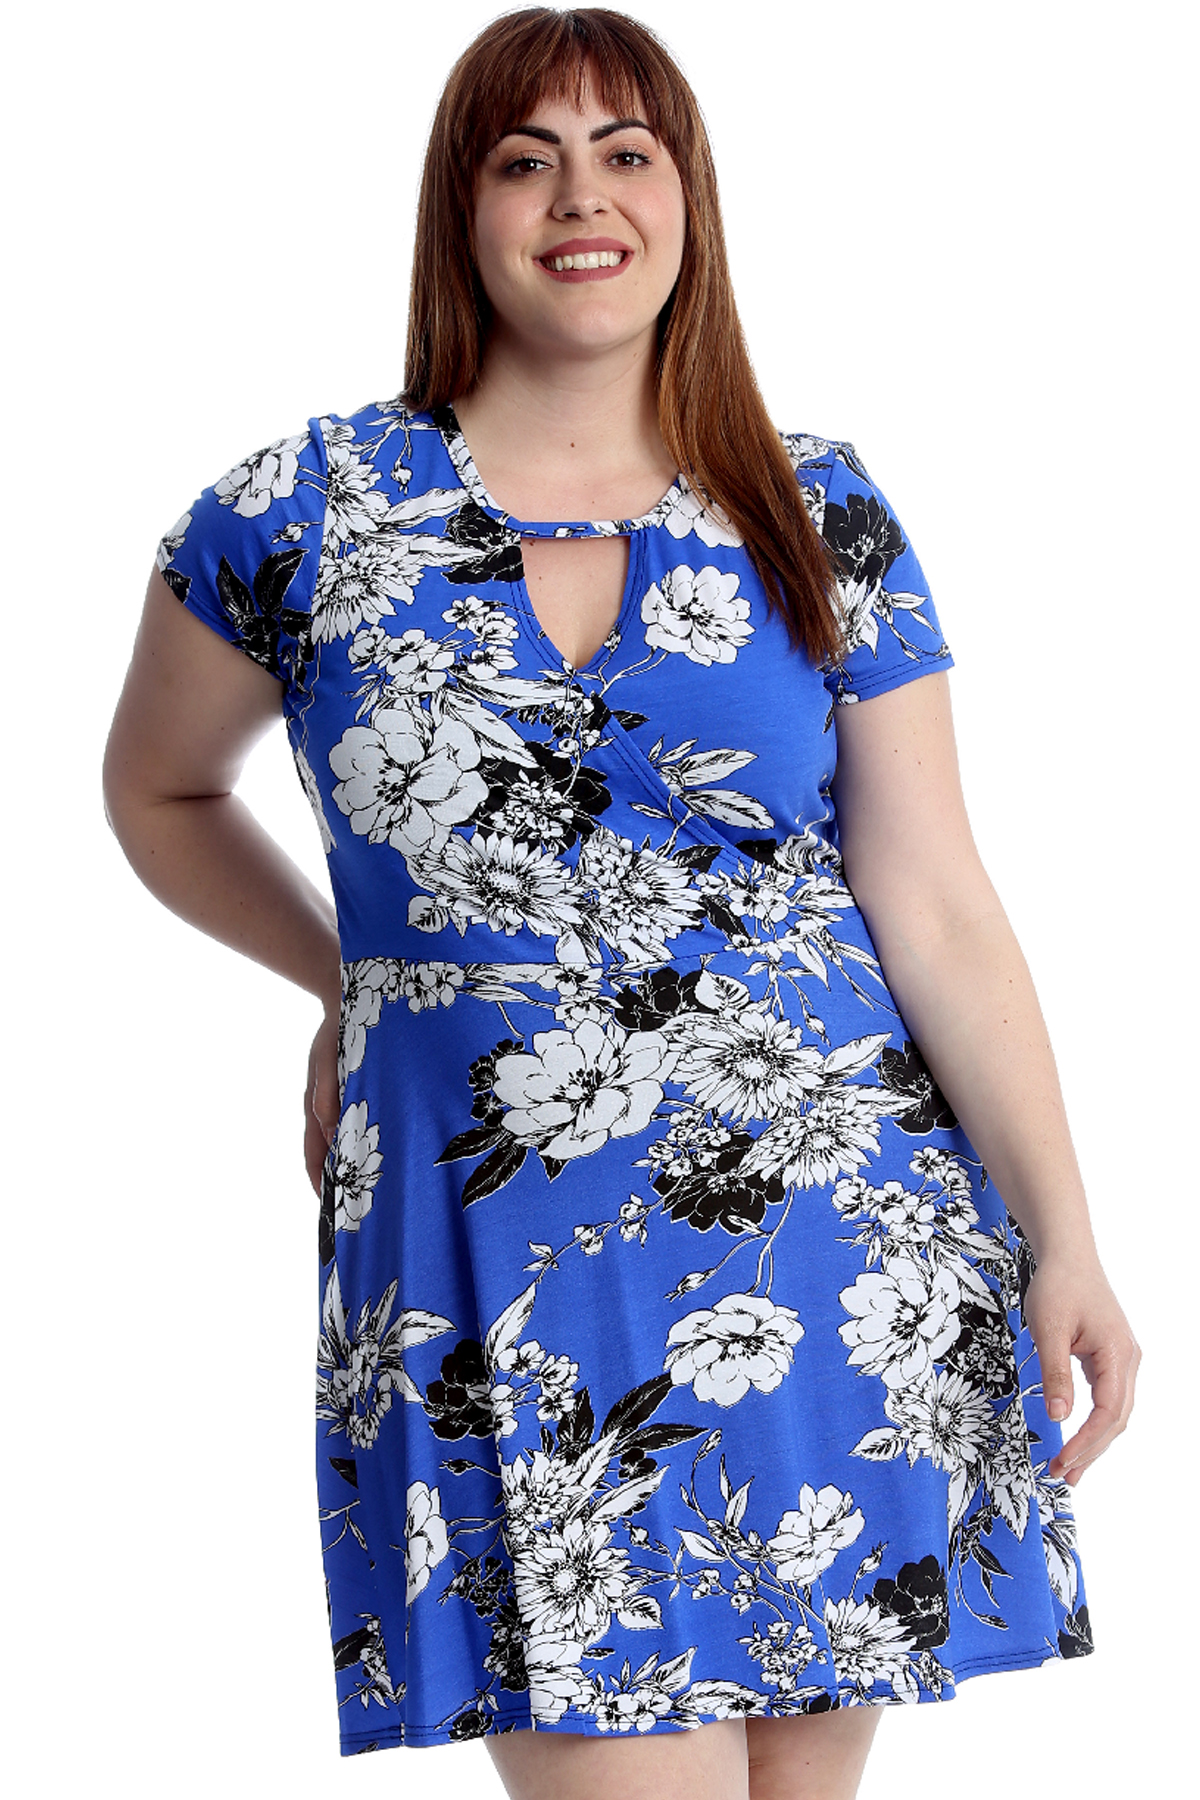 Details about New Womens Plus Size Dress Ladies Floral Crossover Tunic  Summer Midi Style Sale